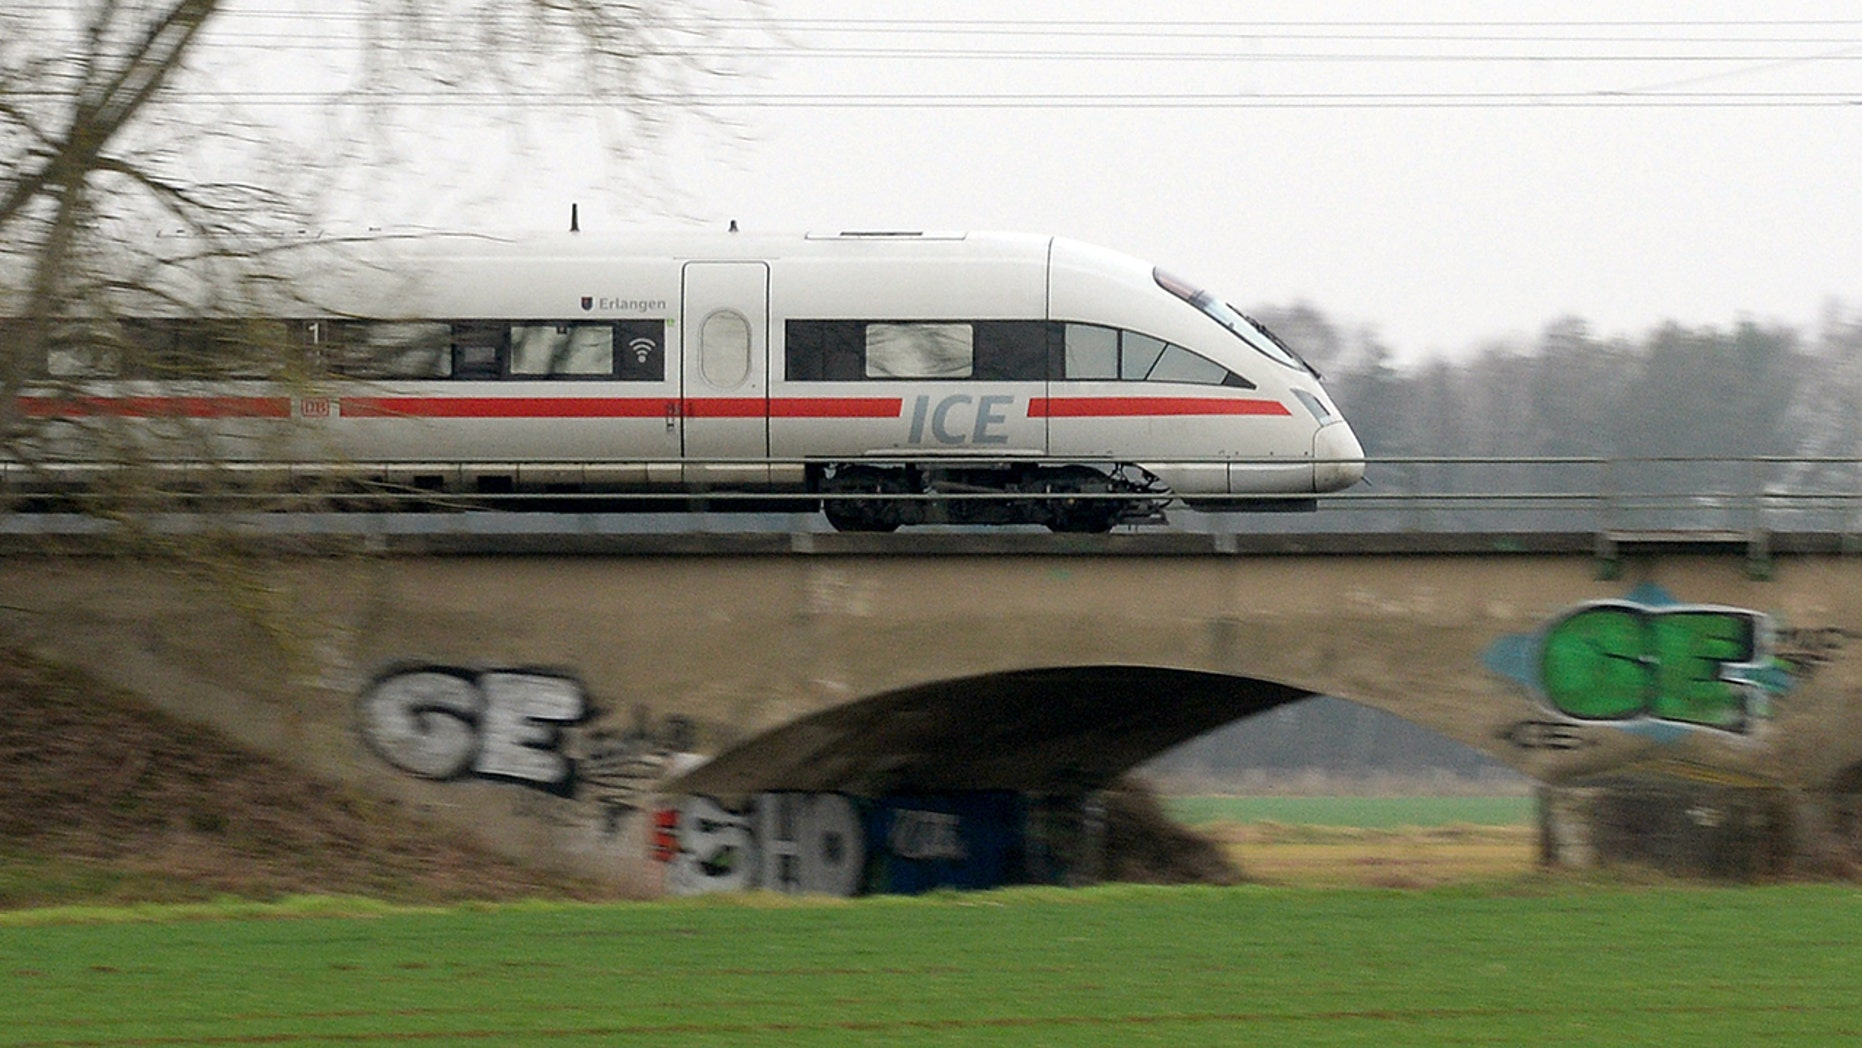 The driver of a German train that missed its stop this week reportedly was found to be drunk.